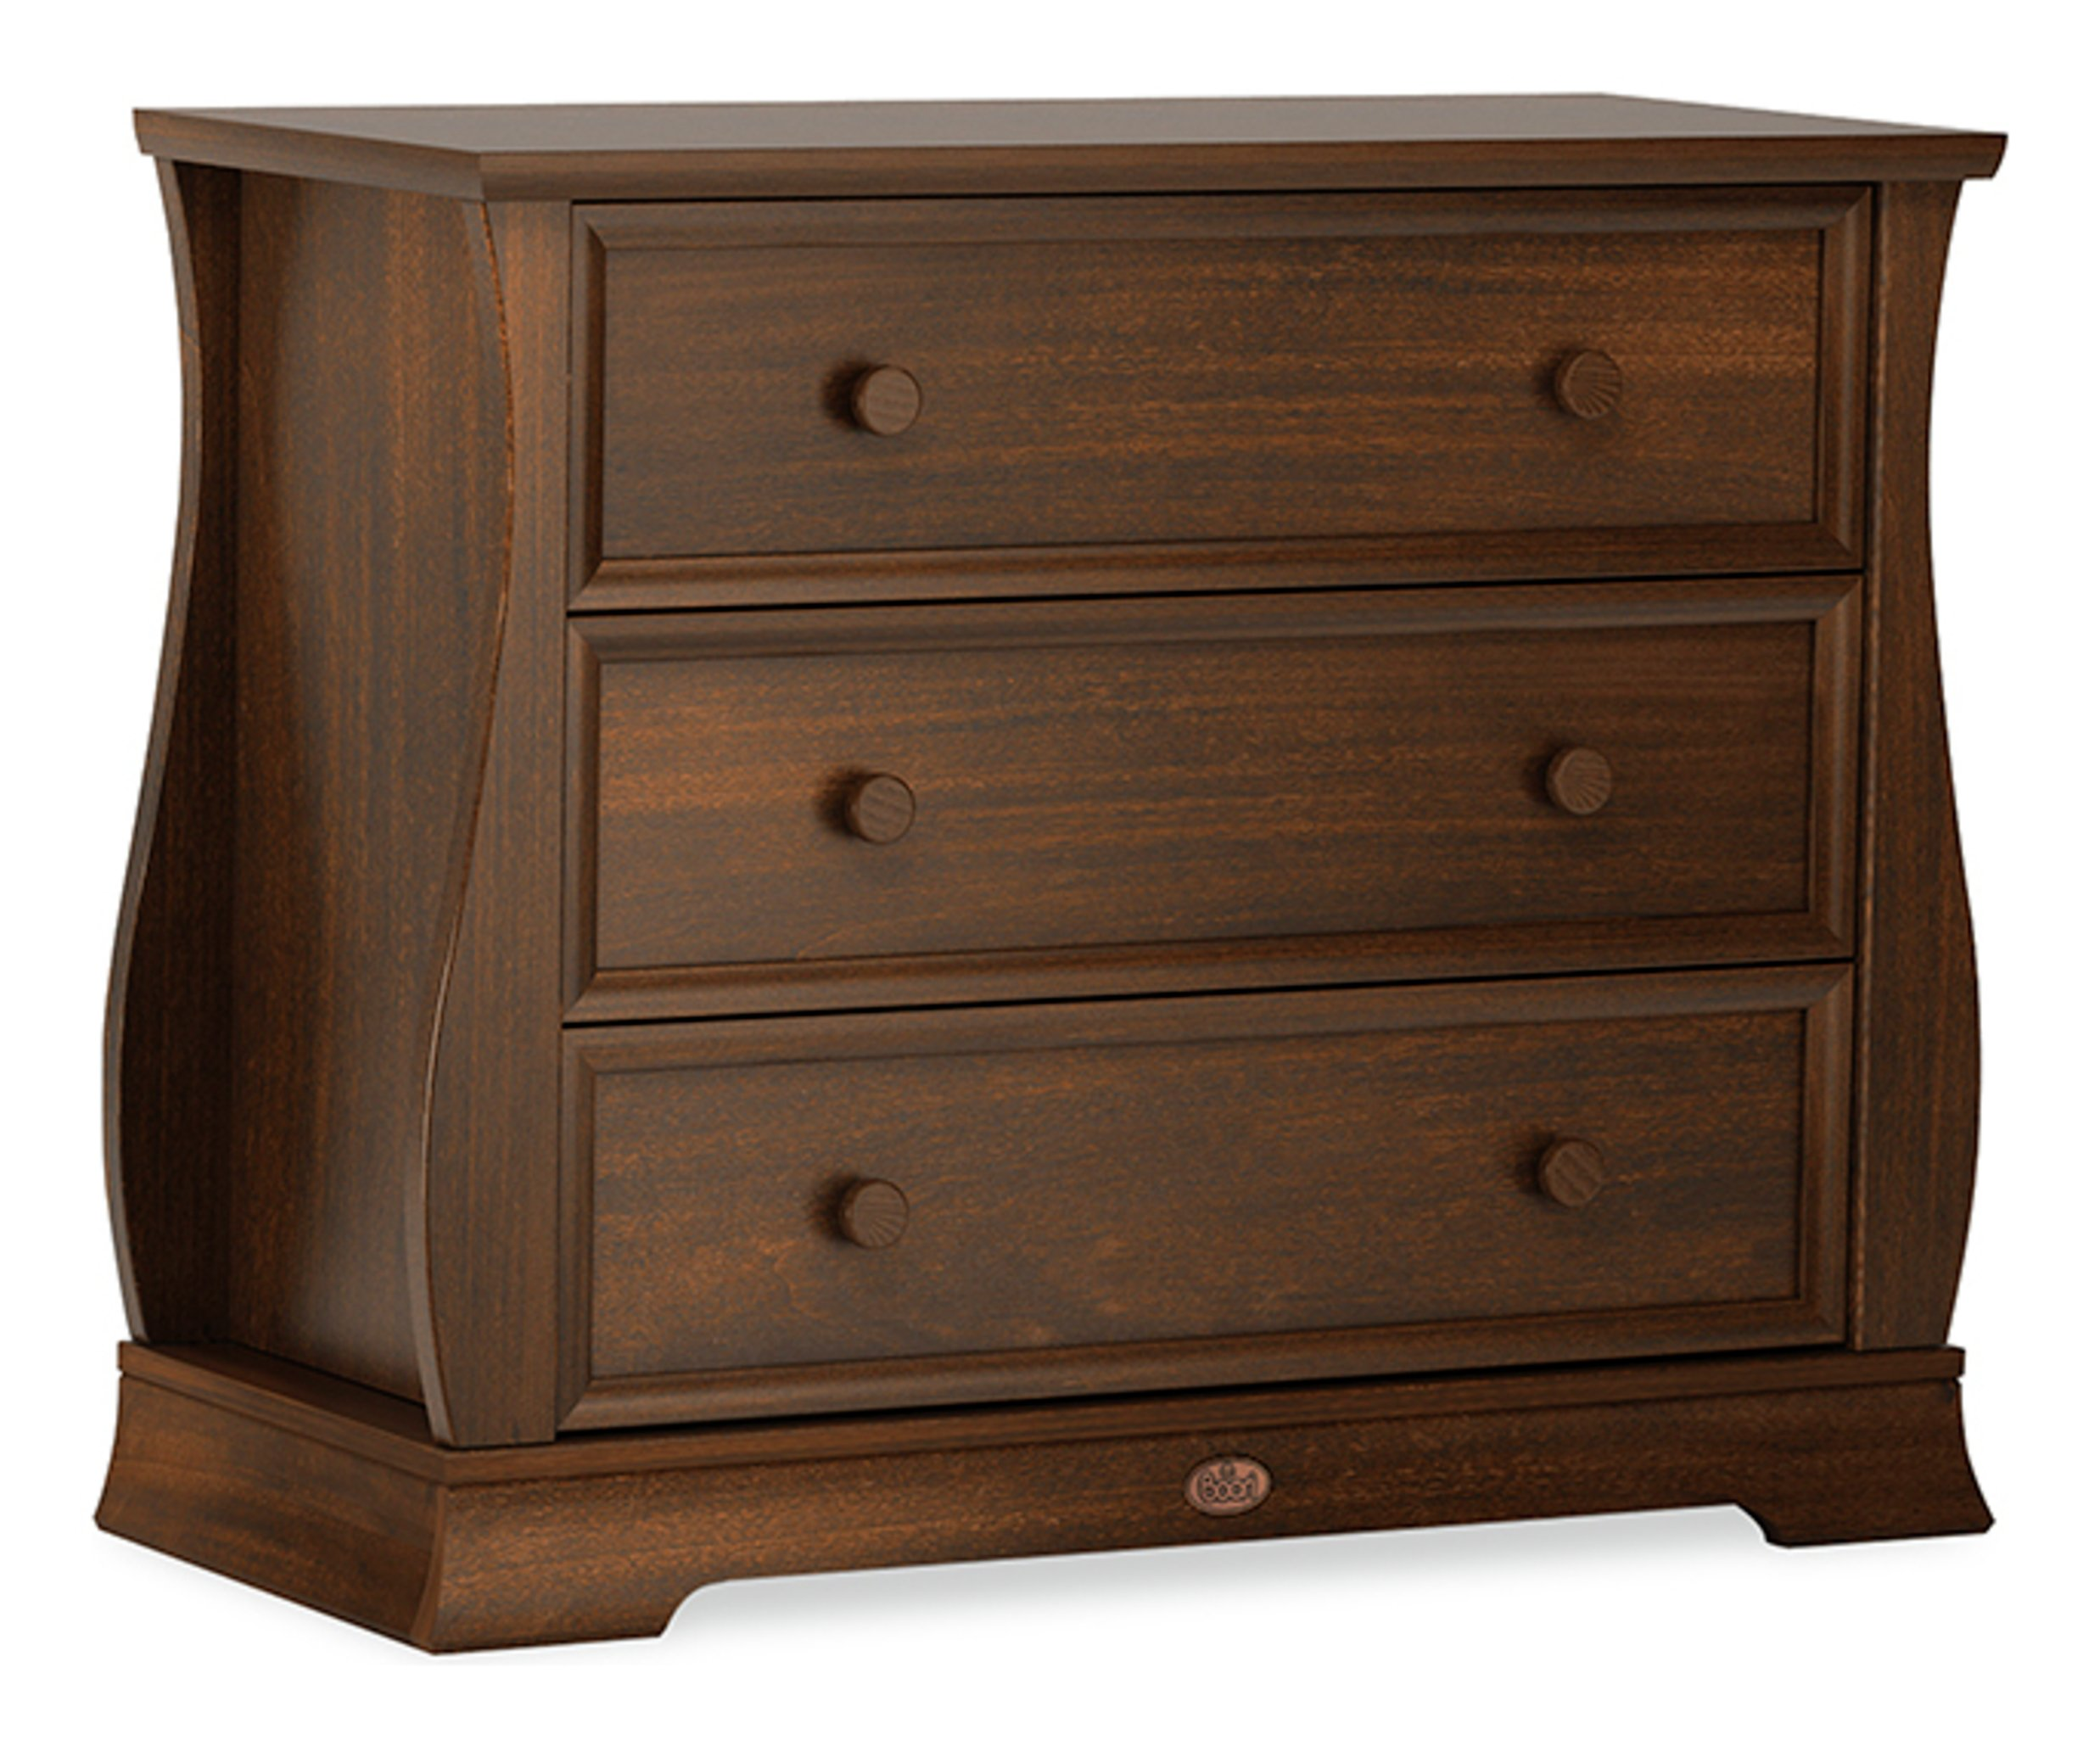 Image of Sleigh 3 Drawer Dresser - English Oak